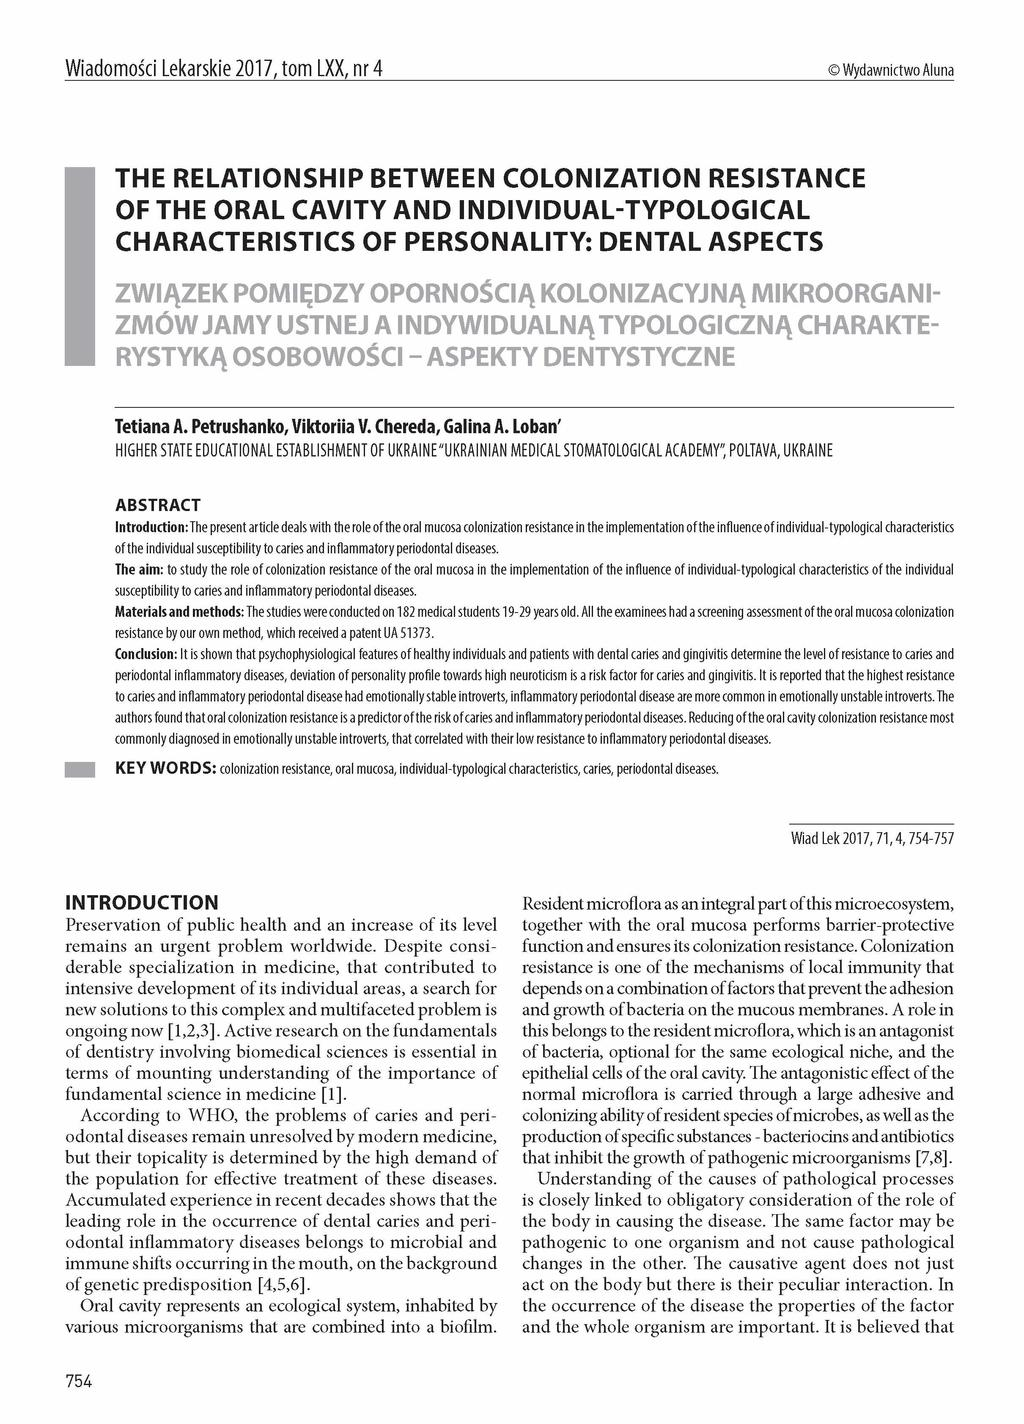 Wiadomosci Lekarskie 2017, tom LXX, nr 4 Wydawnictwo Aluna THE RELATIONSHIP BETWEEN COLONIZATION RESISTANCE OF THE ORAL CAVITY AND INDIVIDUAL-TYPOLOGICAL CHARACTERISTICS OF PERSONALITY: DENTAL